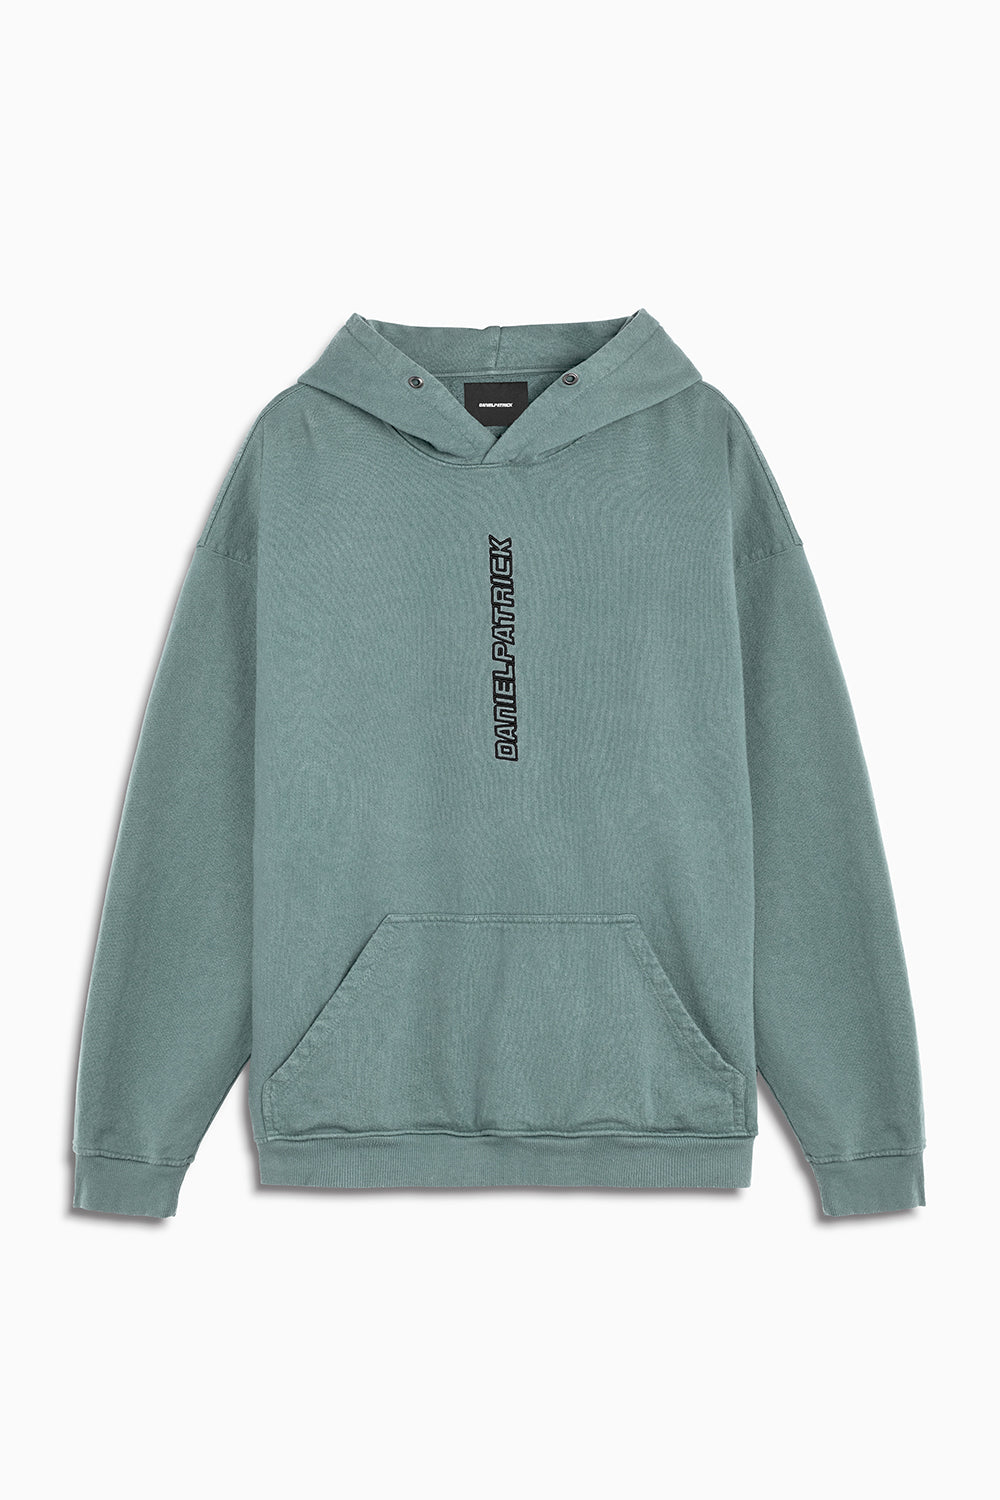 vertical logo hoodie in sea foam/black by daniel patrick